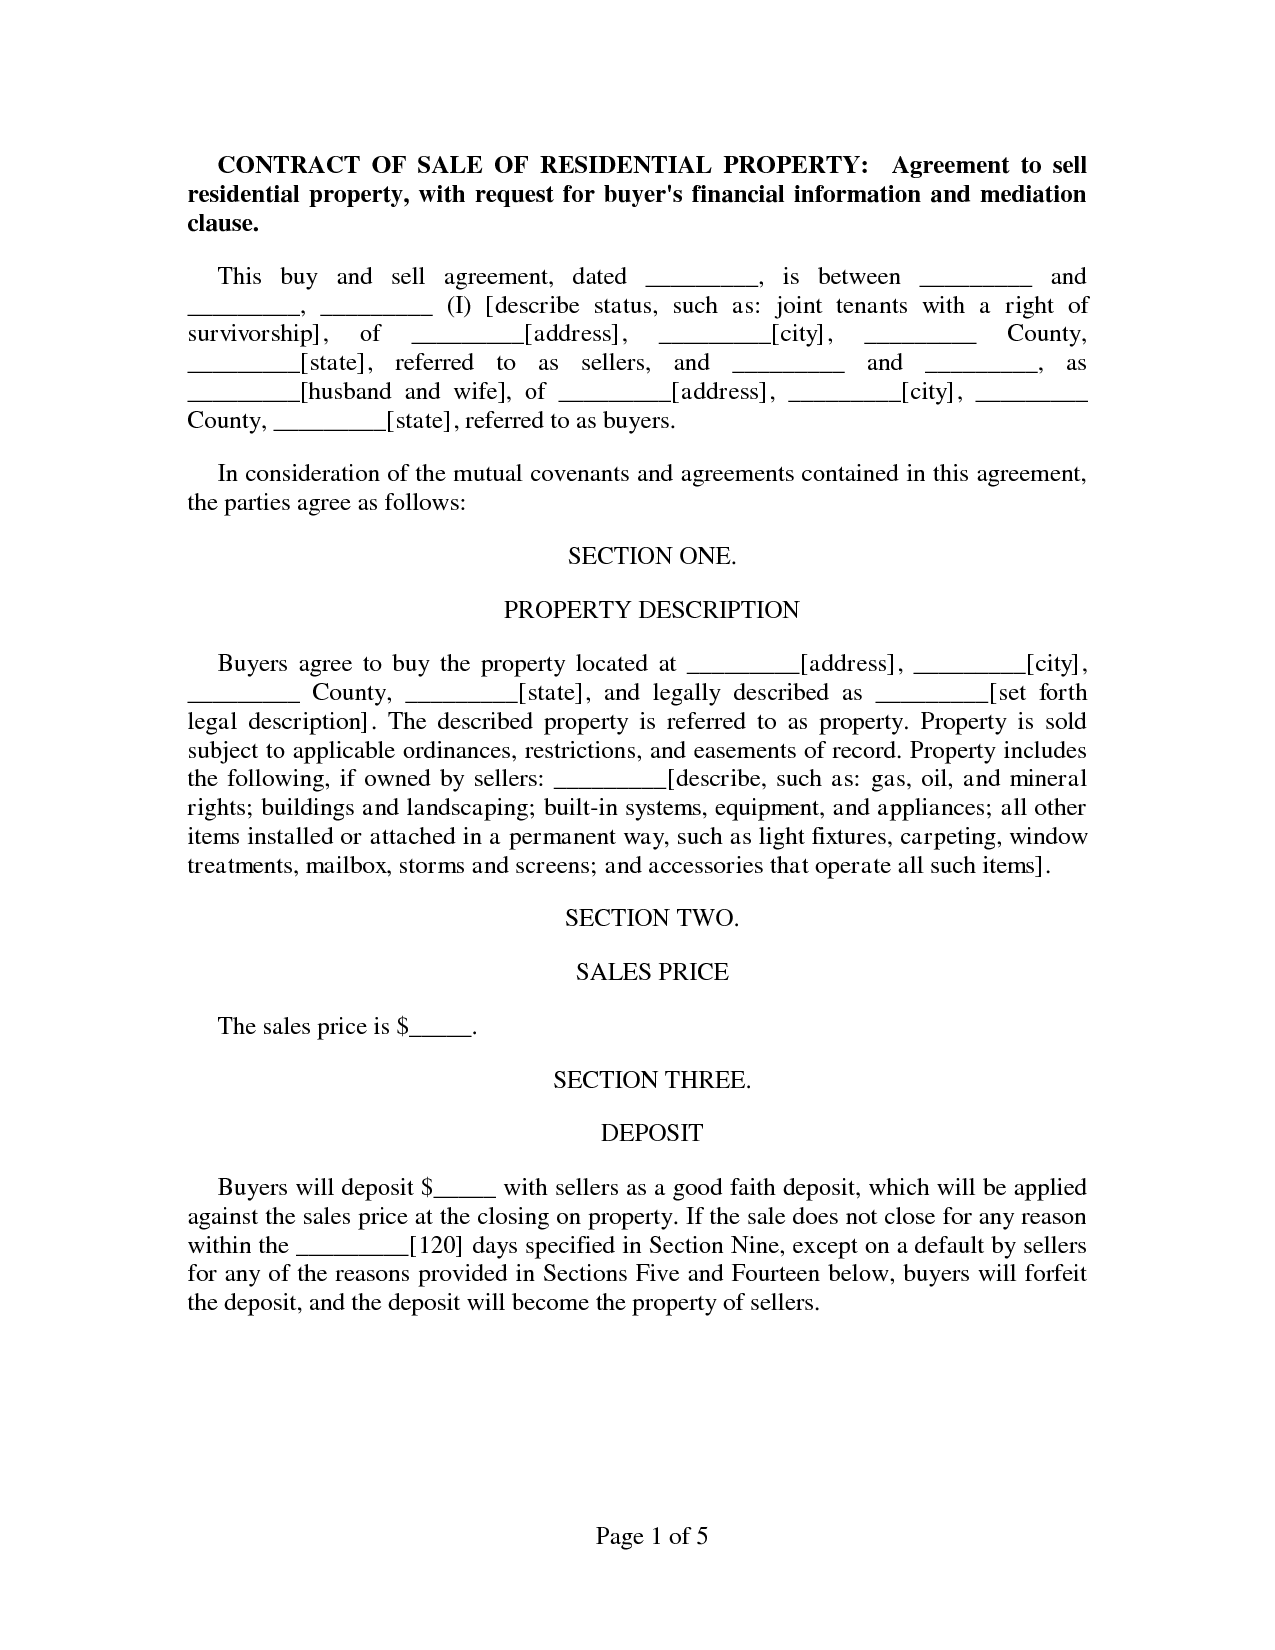 Contract of Sale Agreement   CONTRACT OF SALE OF RESIDENTIAL ...